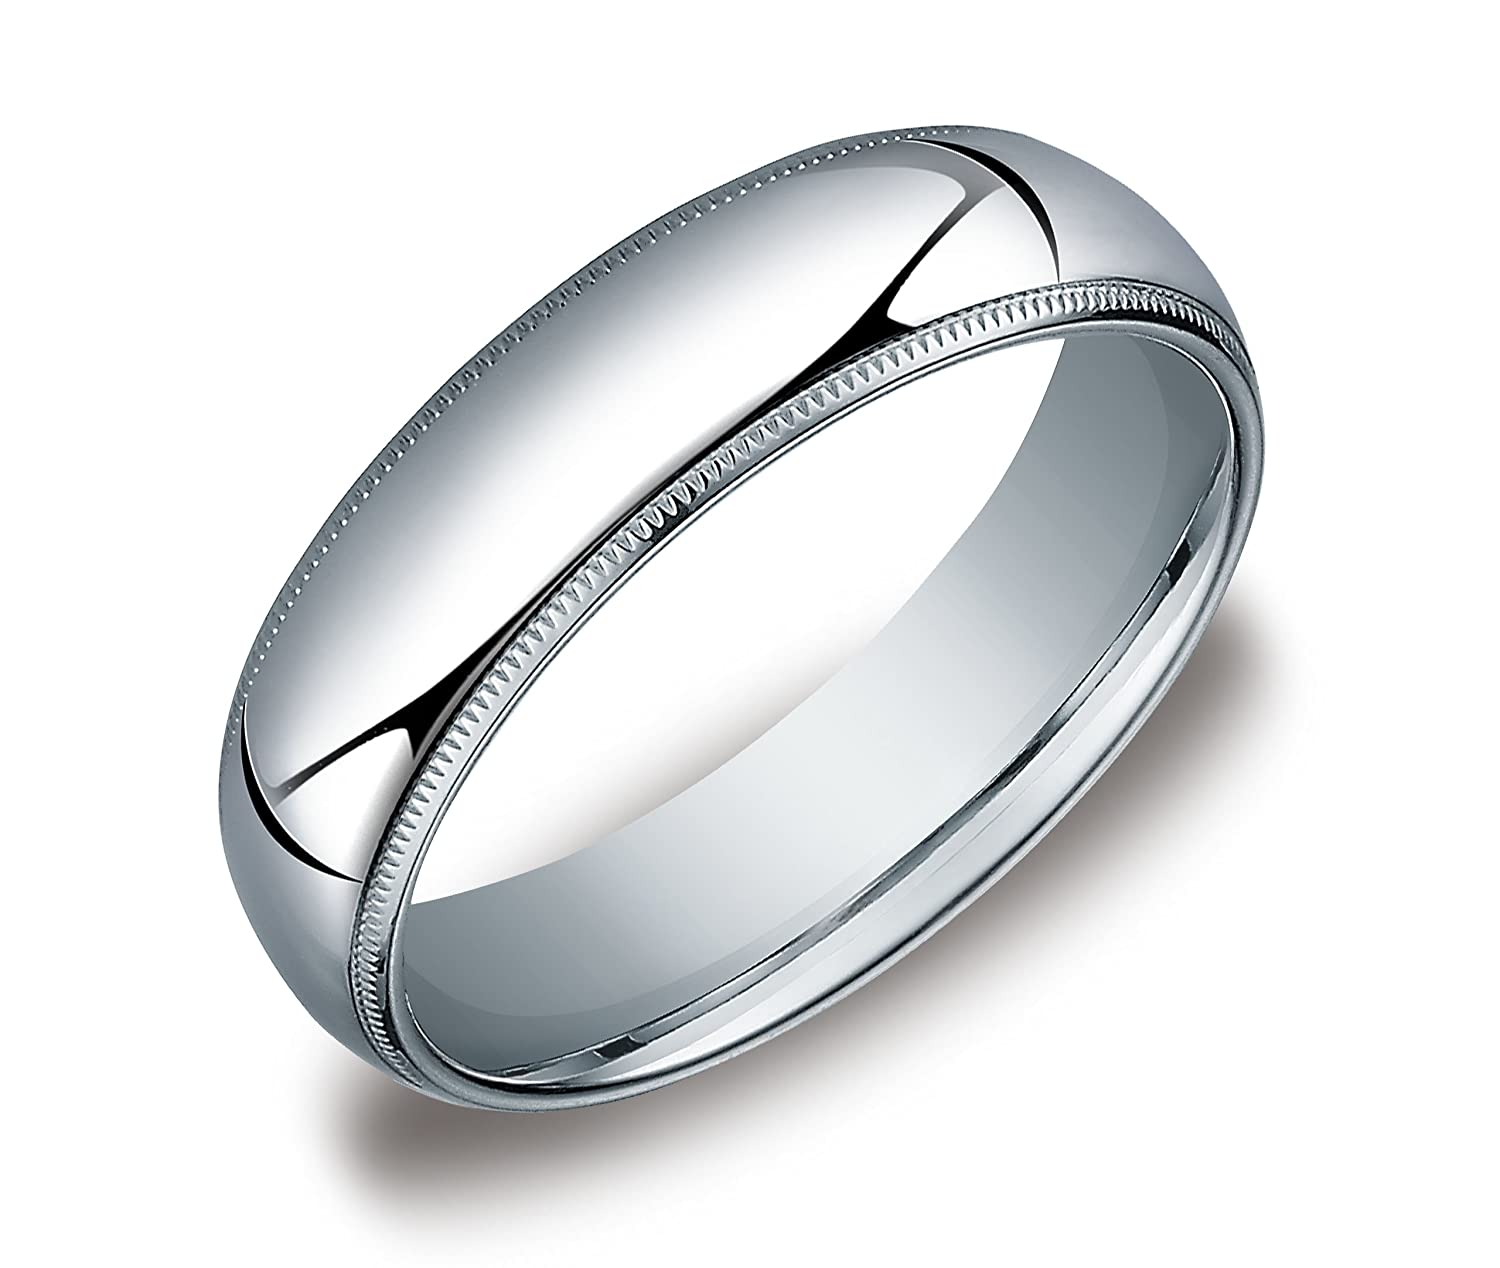 ring tiffany bands milgrain banddouble ed wide flat mm wedding in rings double jewelry platinum essential band m